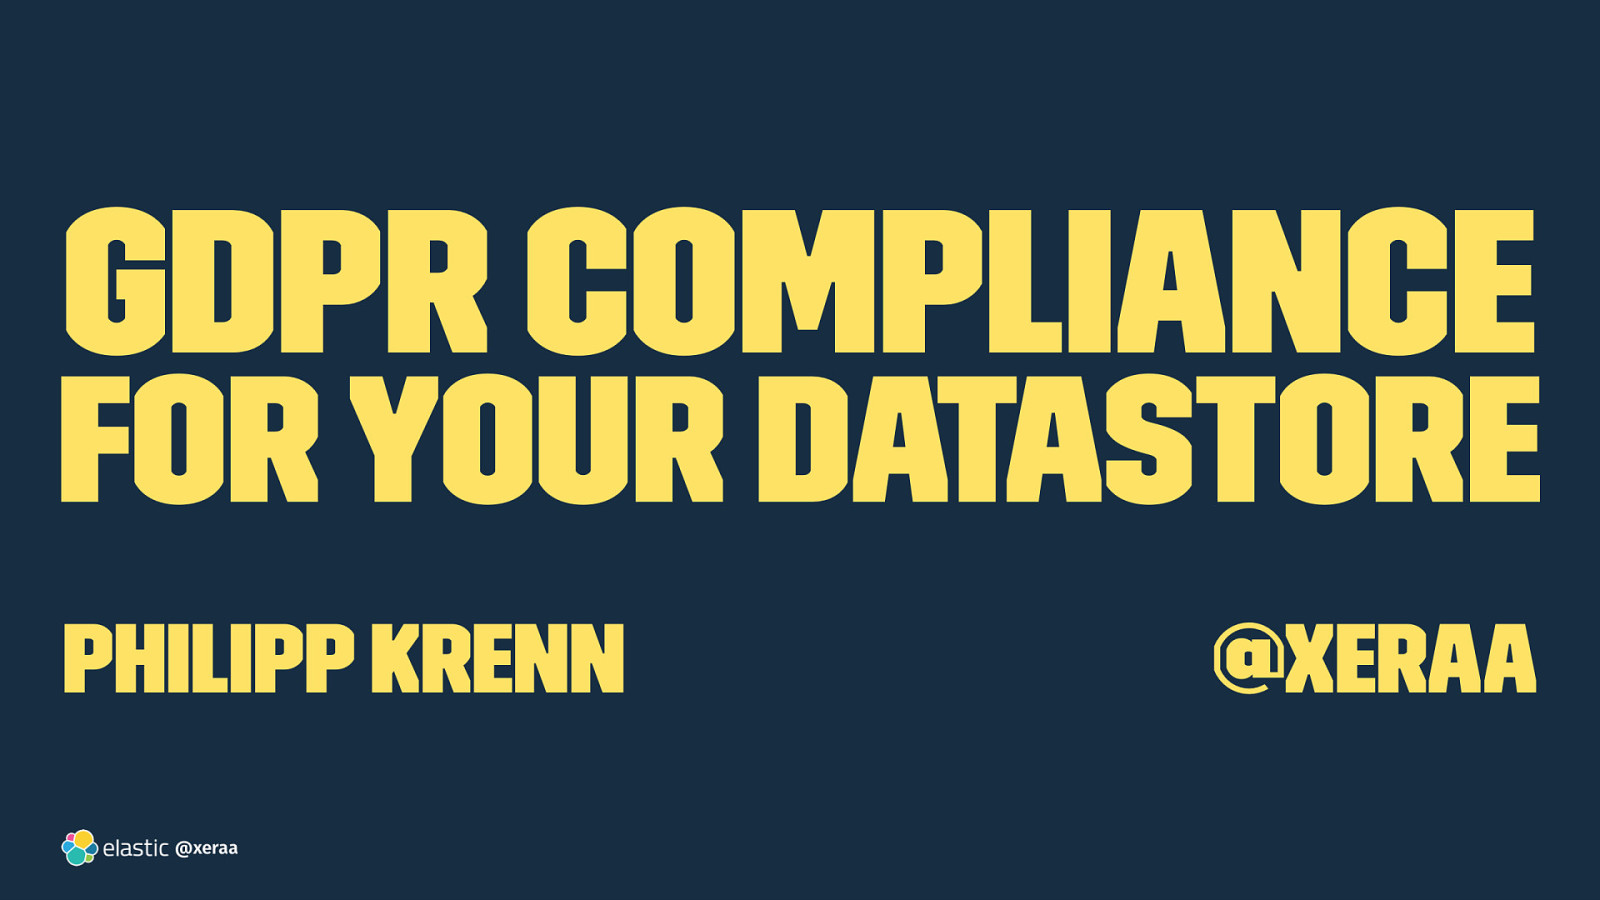 GDPR Compliance for Your Datastore